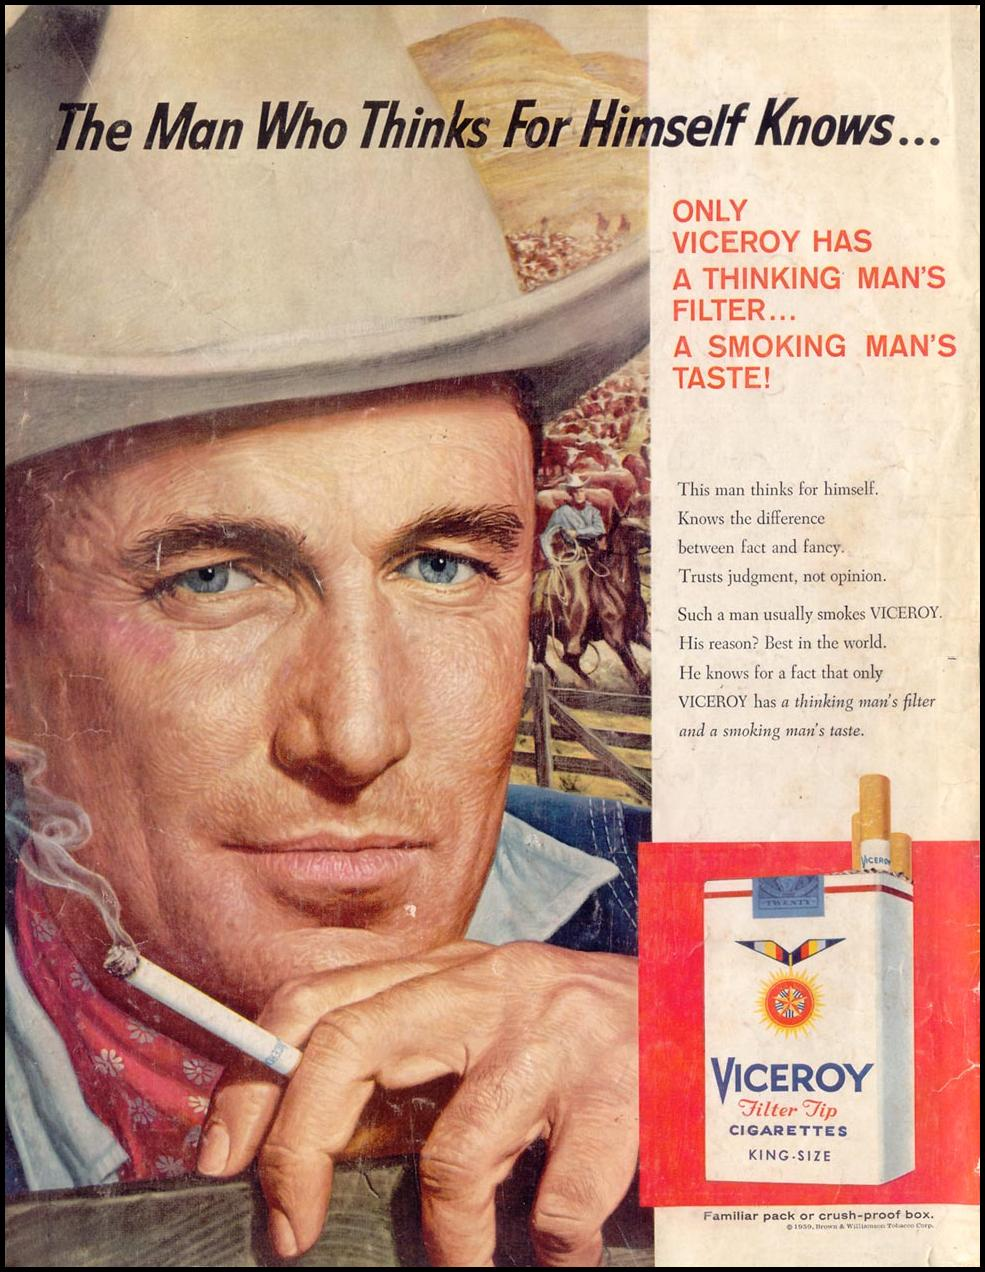 VICEROY CIGARETTES SATURDAY EVENING POST 05/02/1959 BACK COVER